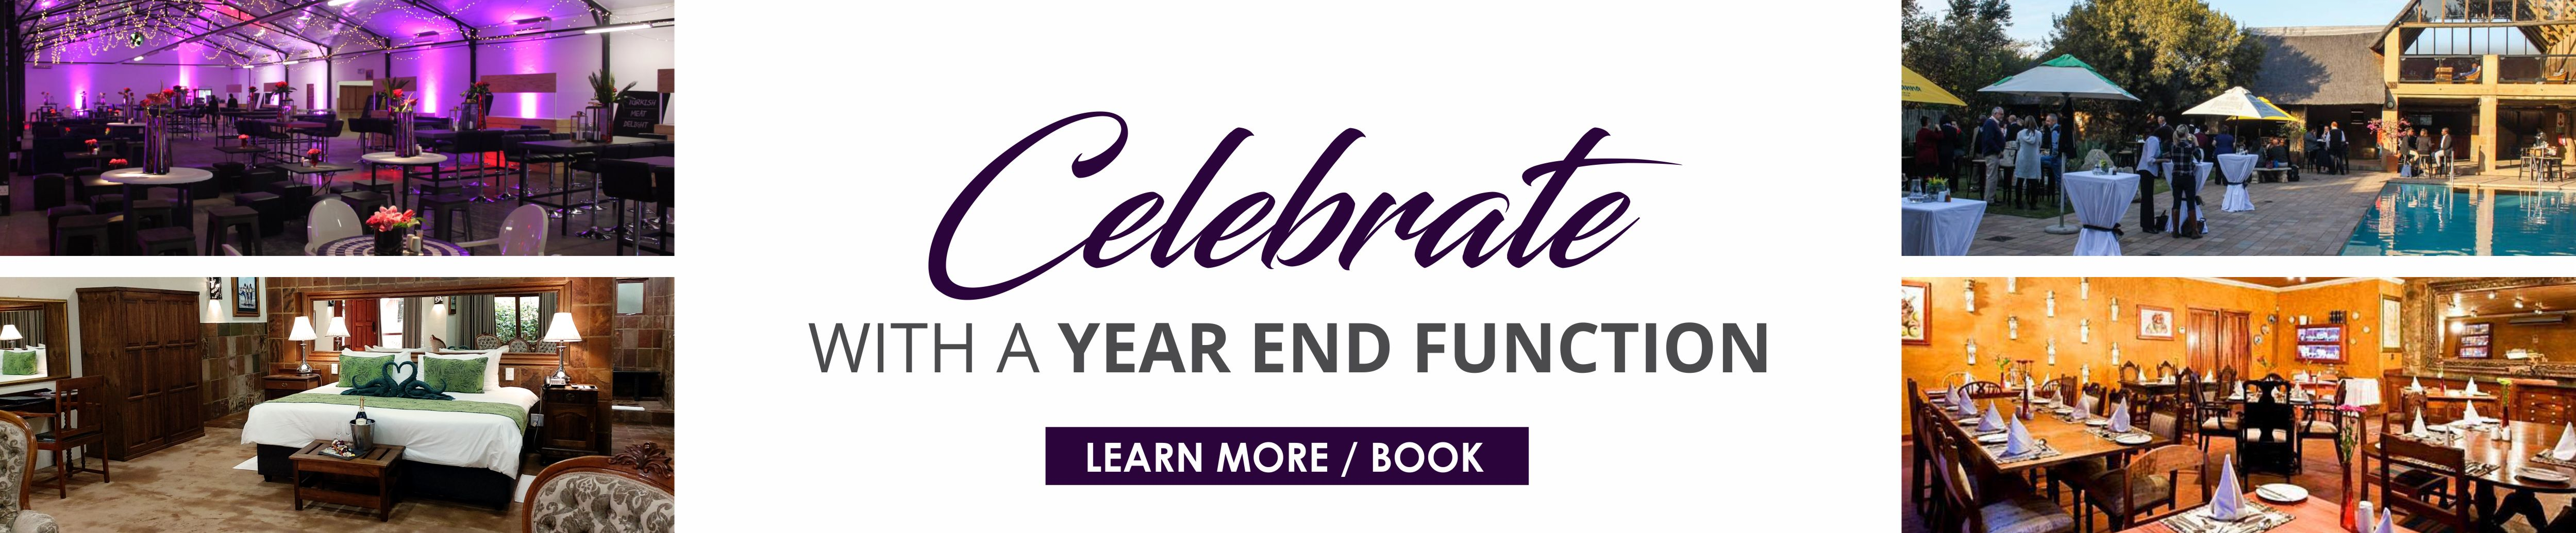 Misty Hills Country Hotel Year End Function Specials Muldersdrift Gauteng venues 2020